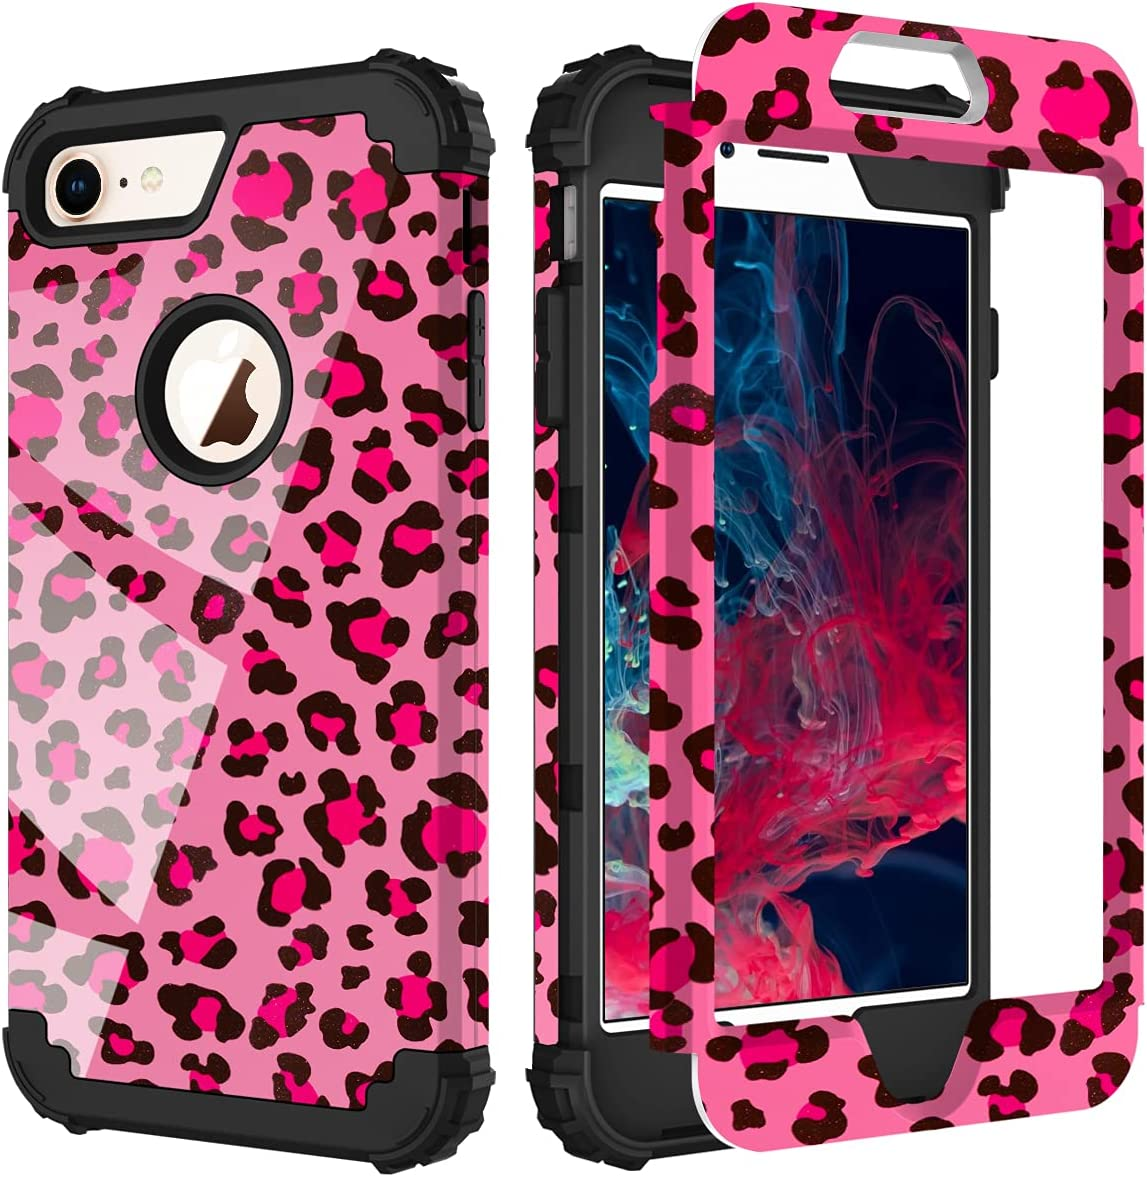 PIXIU Compatible with iPhone 8 Plus Case/iPhone 7 Plus case, Three Layer Heavy Duty Hybrid Sturdy Armor Shockproof Protective Phone Cover Cases for Apple iPhone 8 Plus/7 Plus(Leopard)